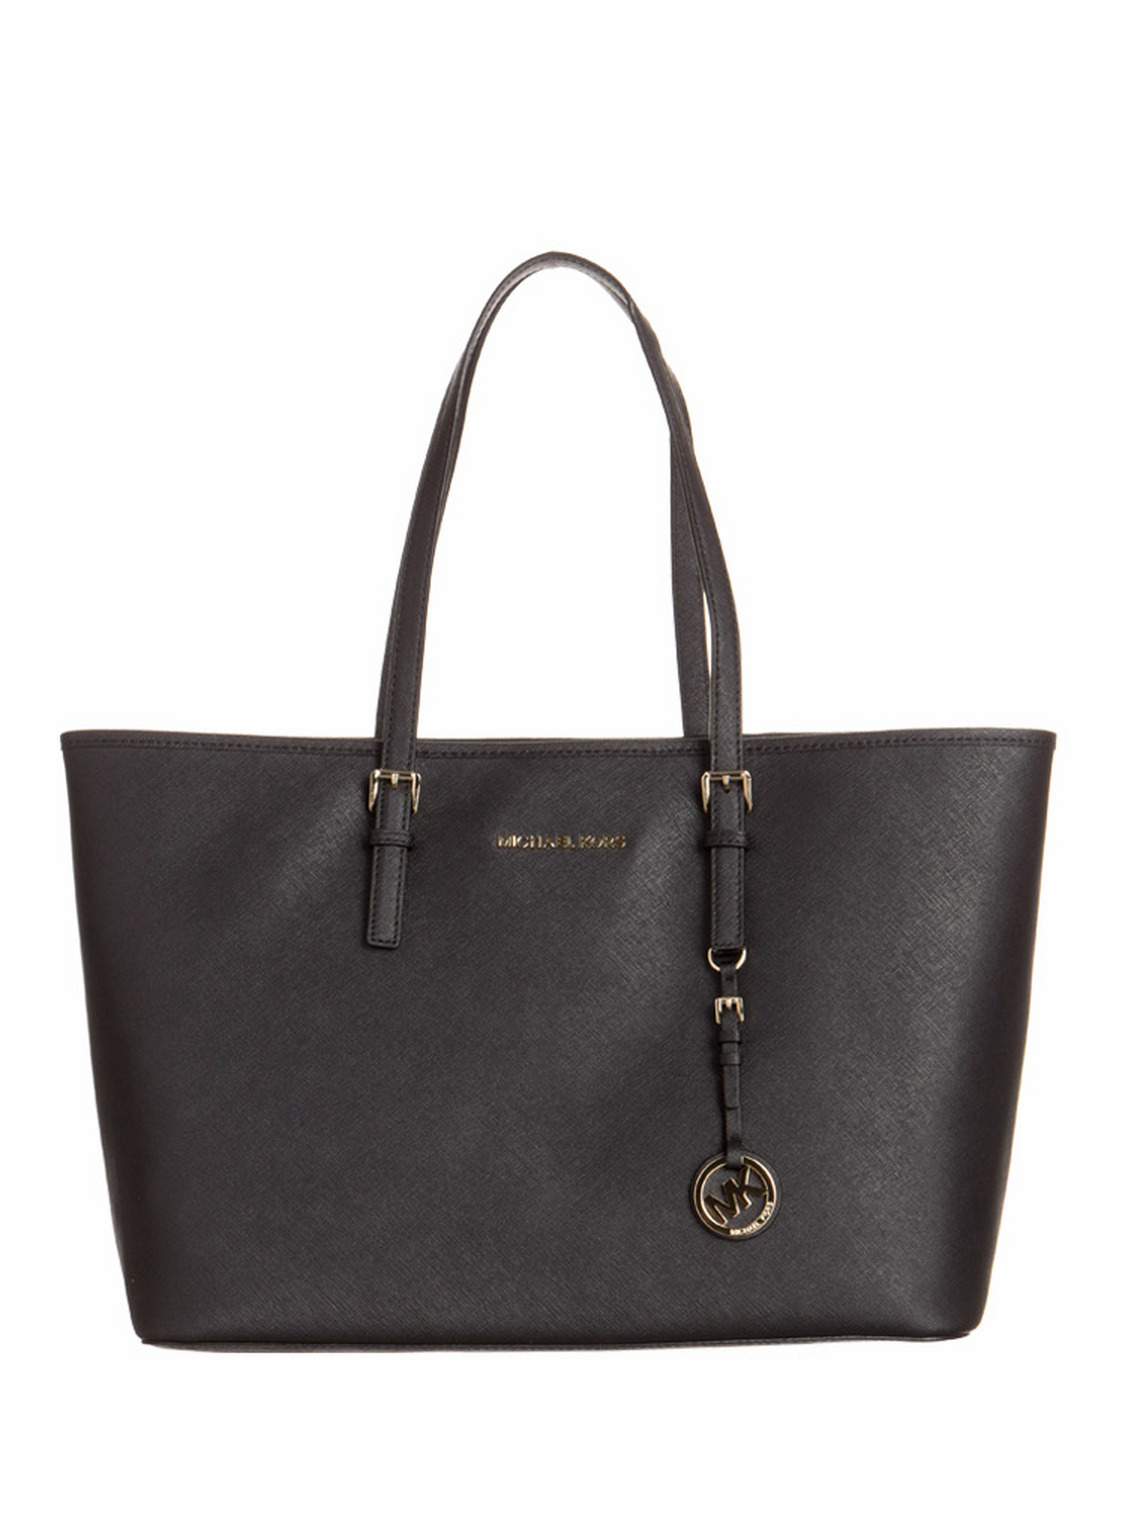 Michael Kors Jet Set Item Schwarz